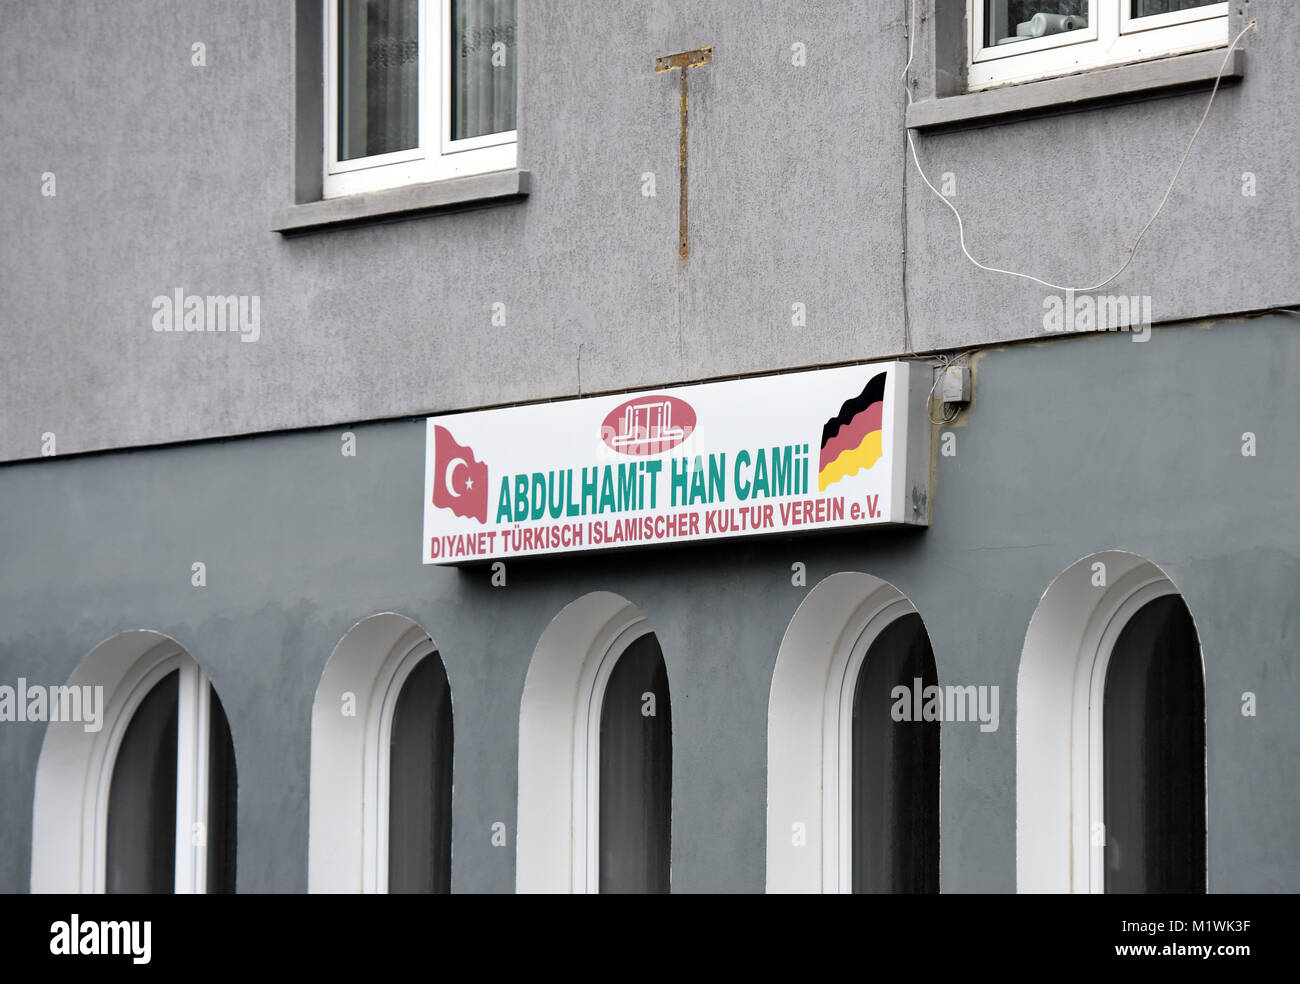 Oer-Erkenschwick, Germany. 2nd Feb, 2018. 'Abdulhamit Han Camii' reads a sign on the house whose inhabitants - Stock Image